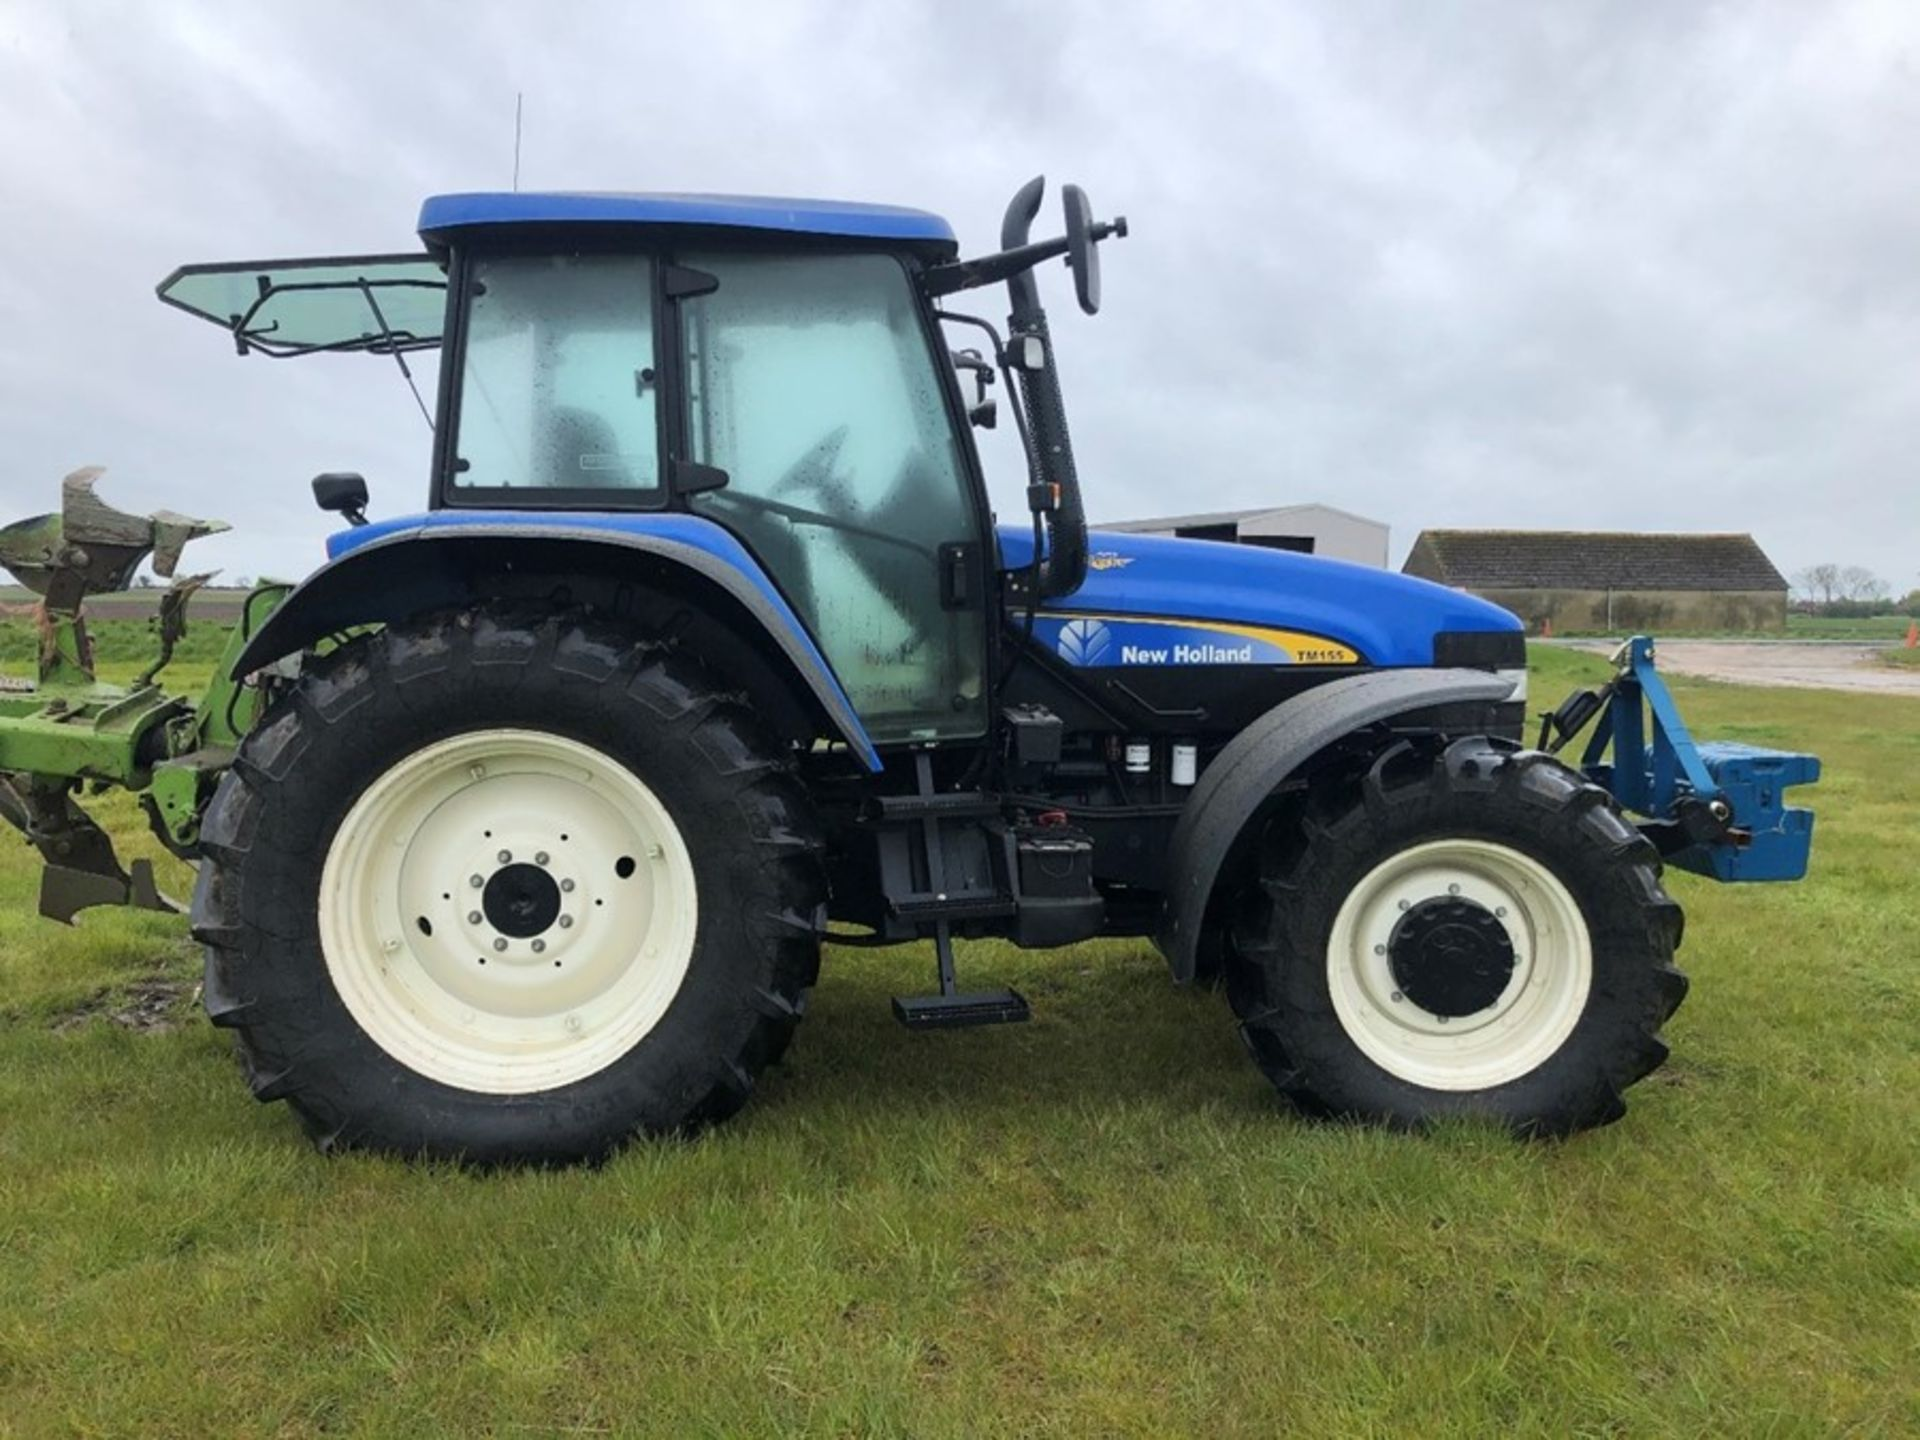 (07) New Holland TM 155 - Image 10 of 10